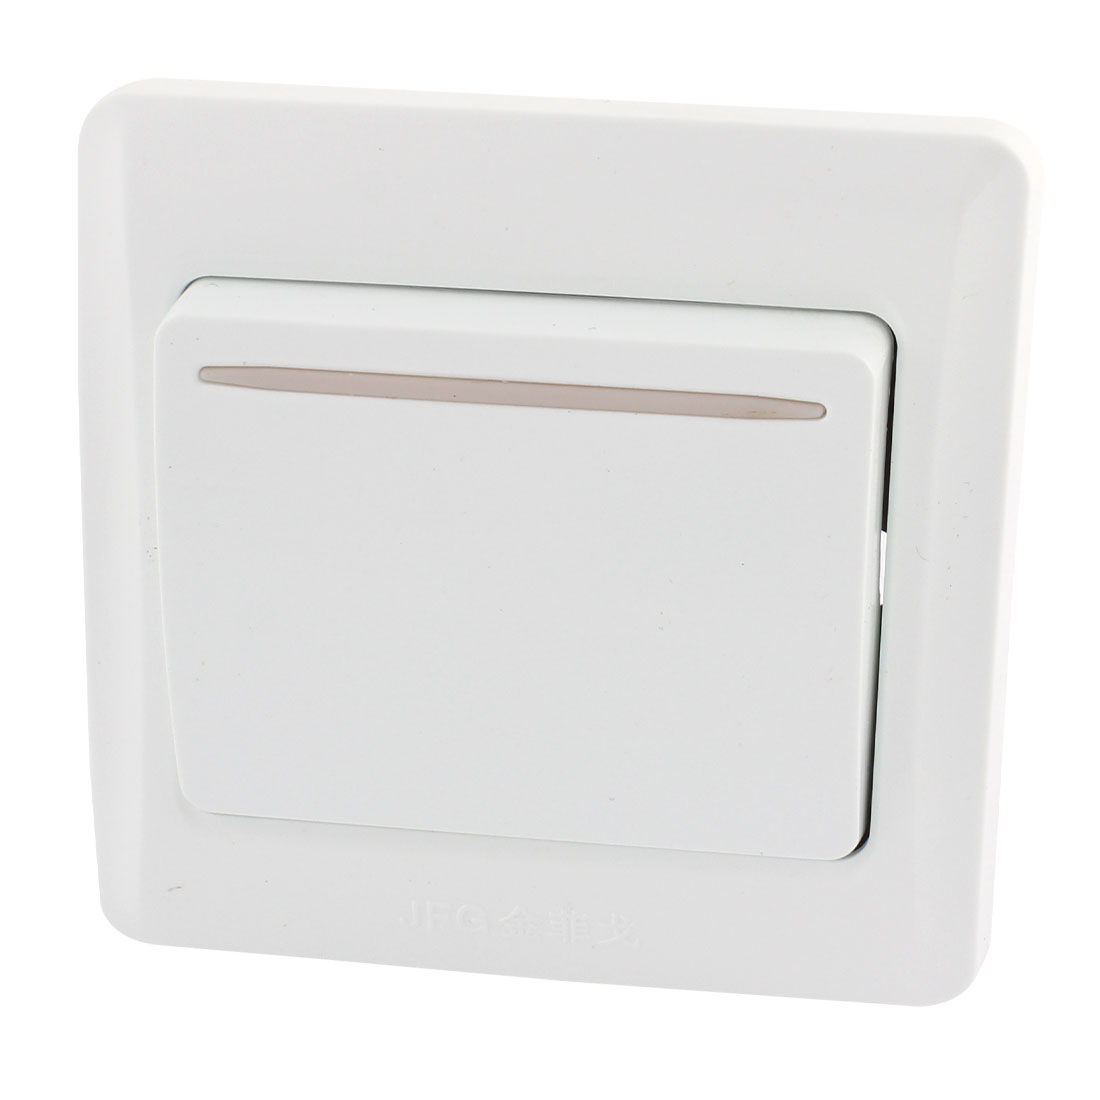 AC 10A 250V Square 1 Gang On/Off Press Button Type Wall Plate Switch White